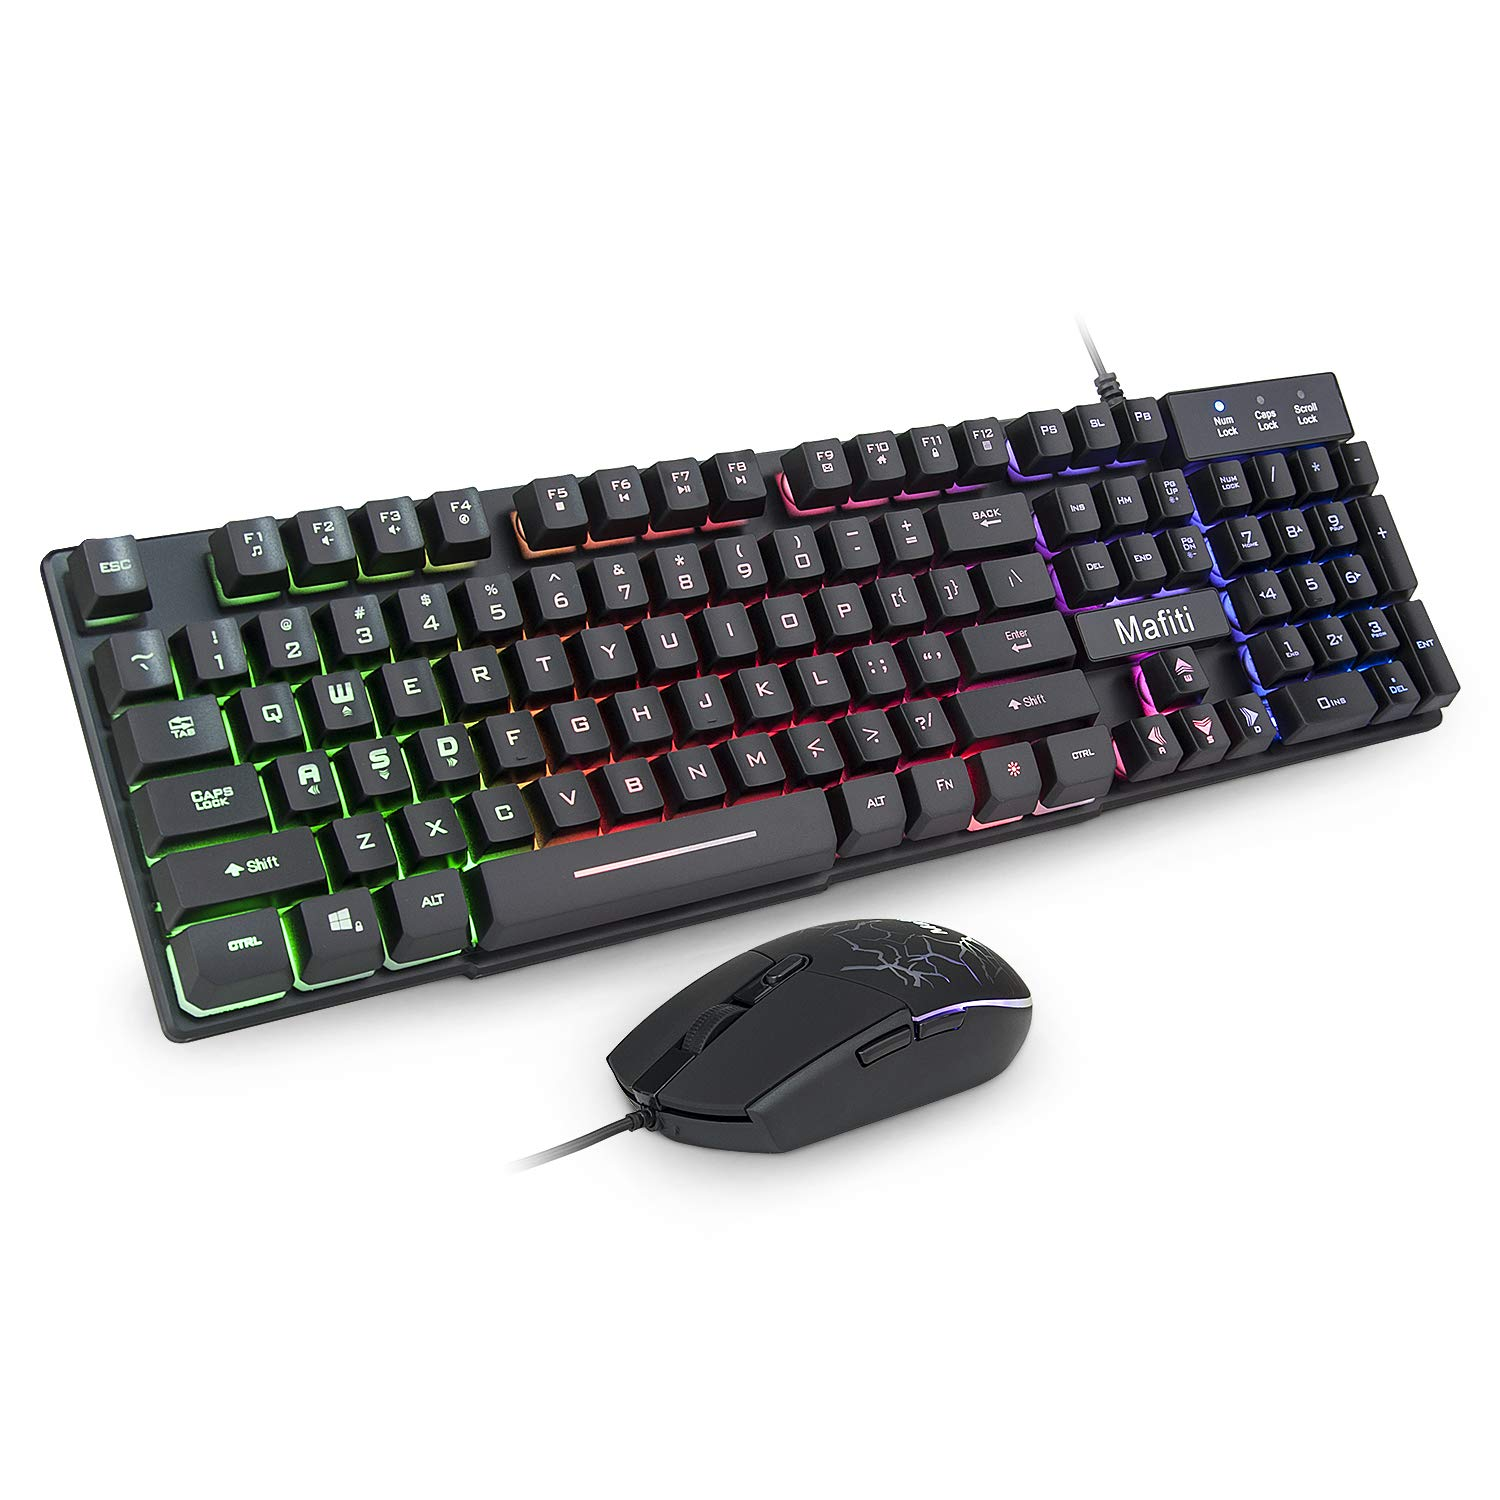 Mafiti Gaming Keyboard and Mouse Set, Rainbow Backlit Mechanical Feel Keyboard Colorful Breathing Backlit Gaming Mouse for Working or Gaming